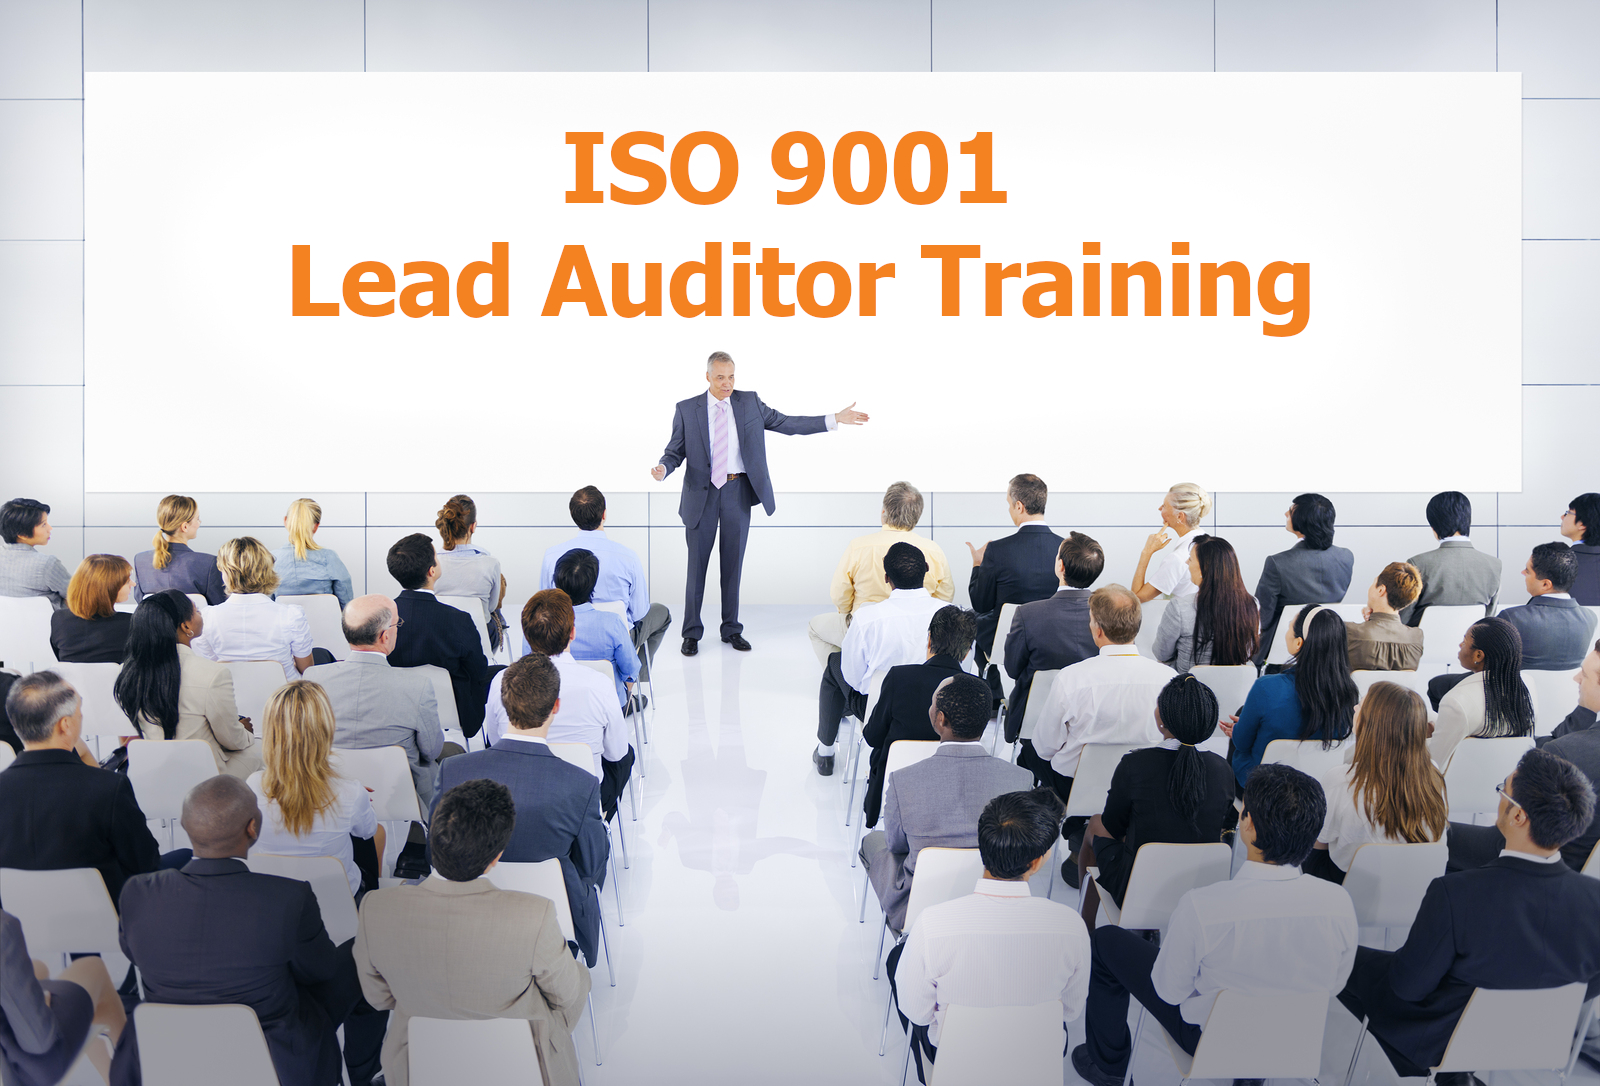 Training Room ISO 9001 Lead Auditor Training